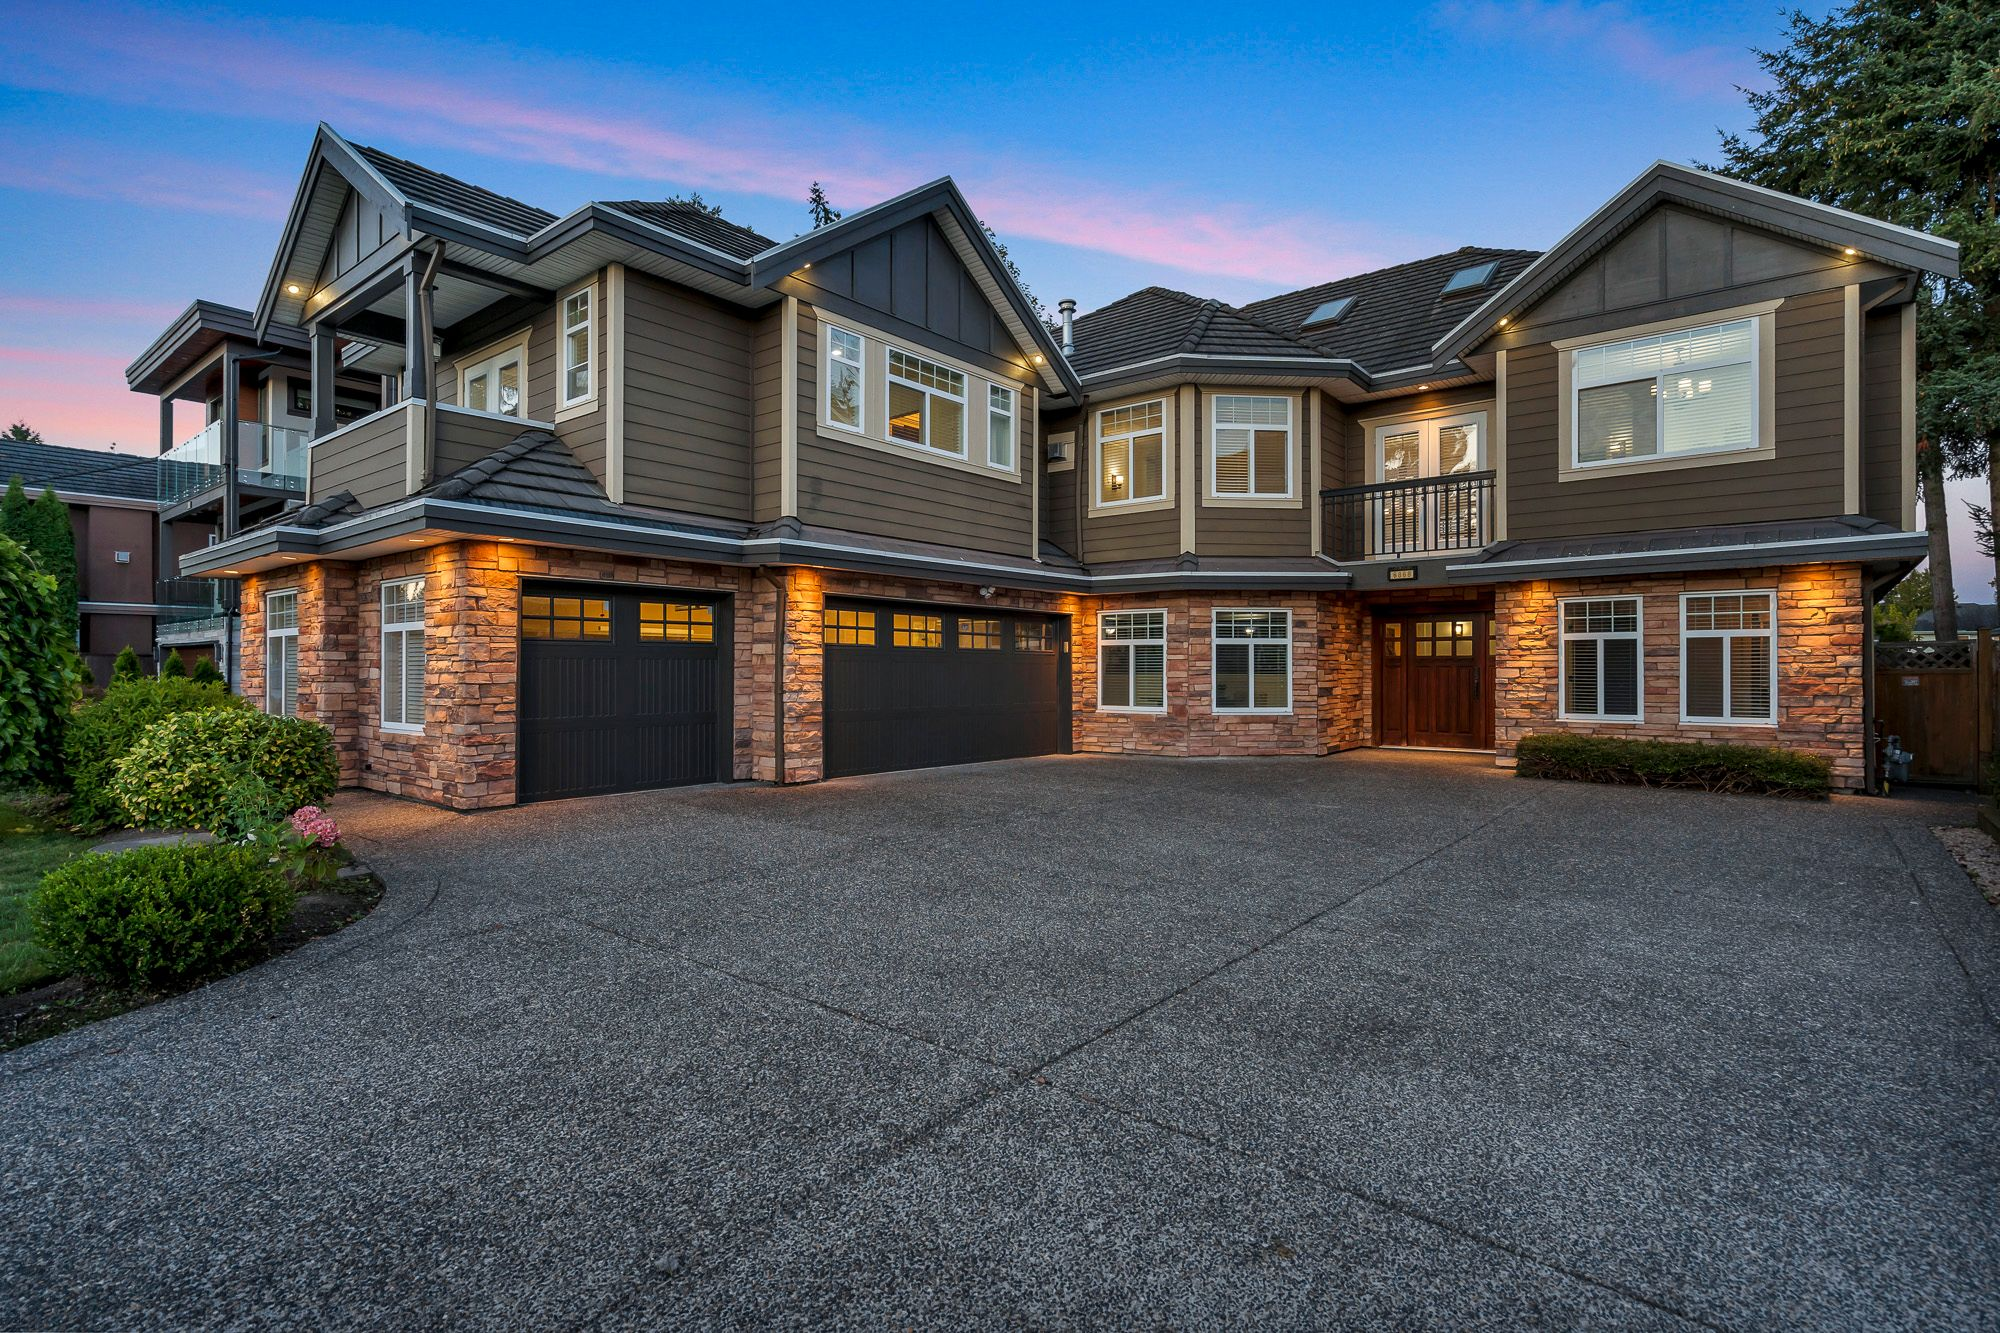 Main Photo: 6868 CLEVEDON Drive in Surrey: West Newton House for sale : MLS®# R2490841